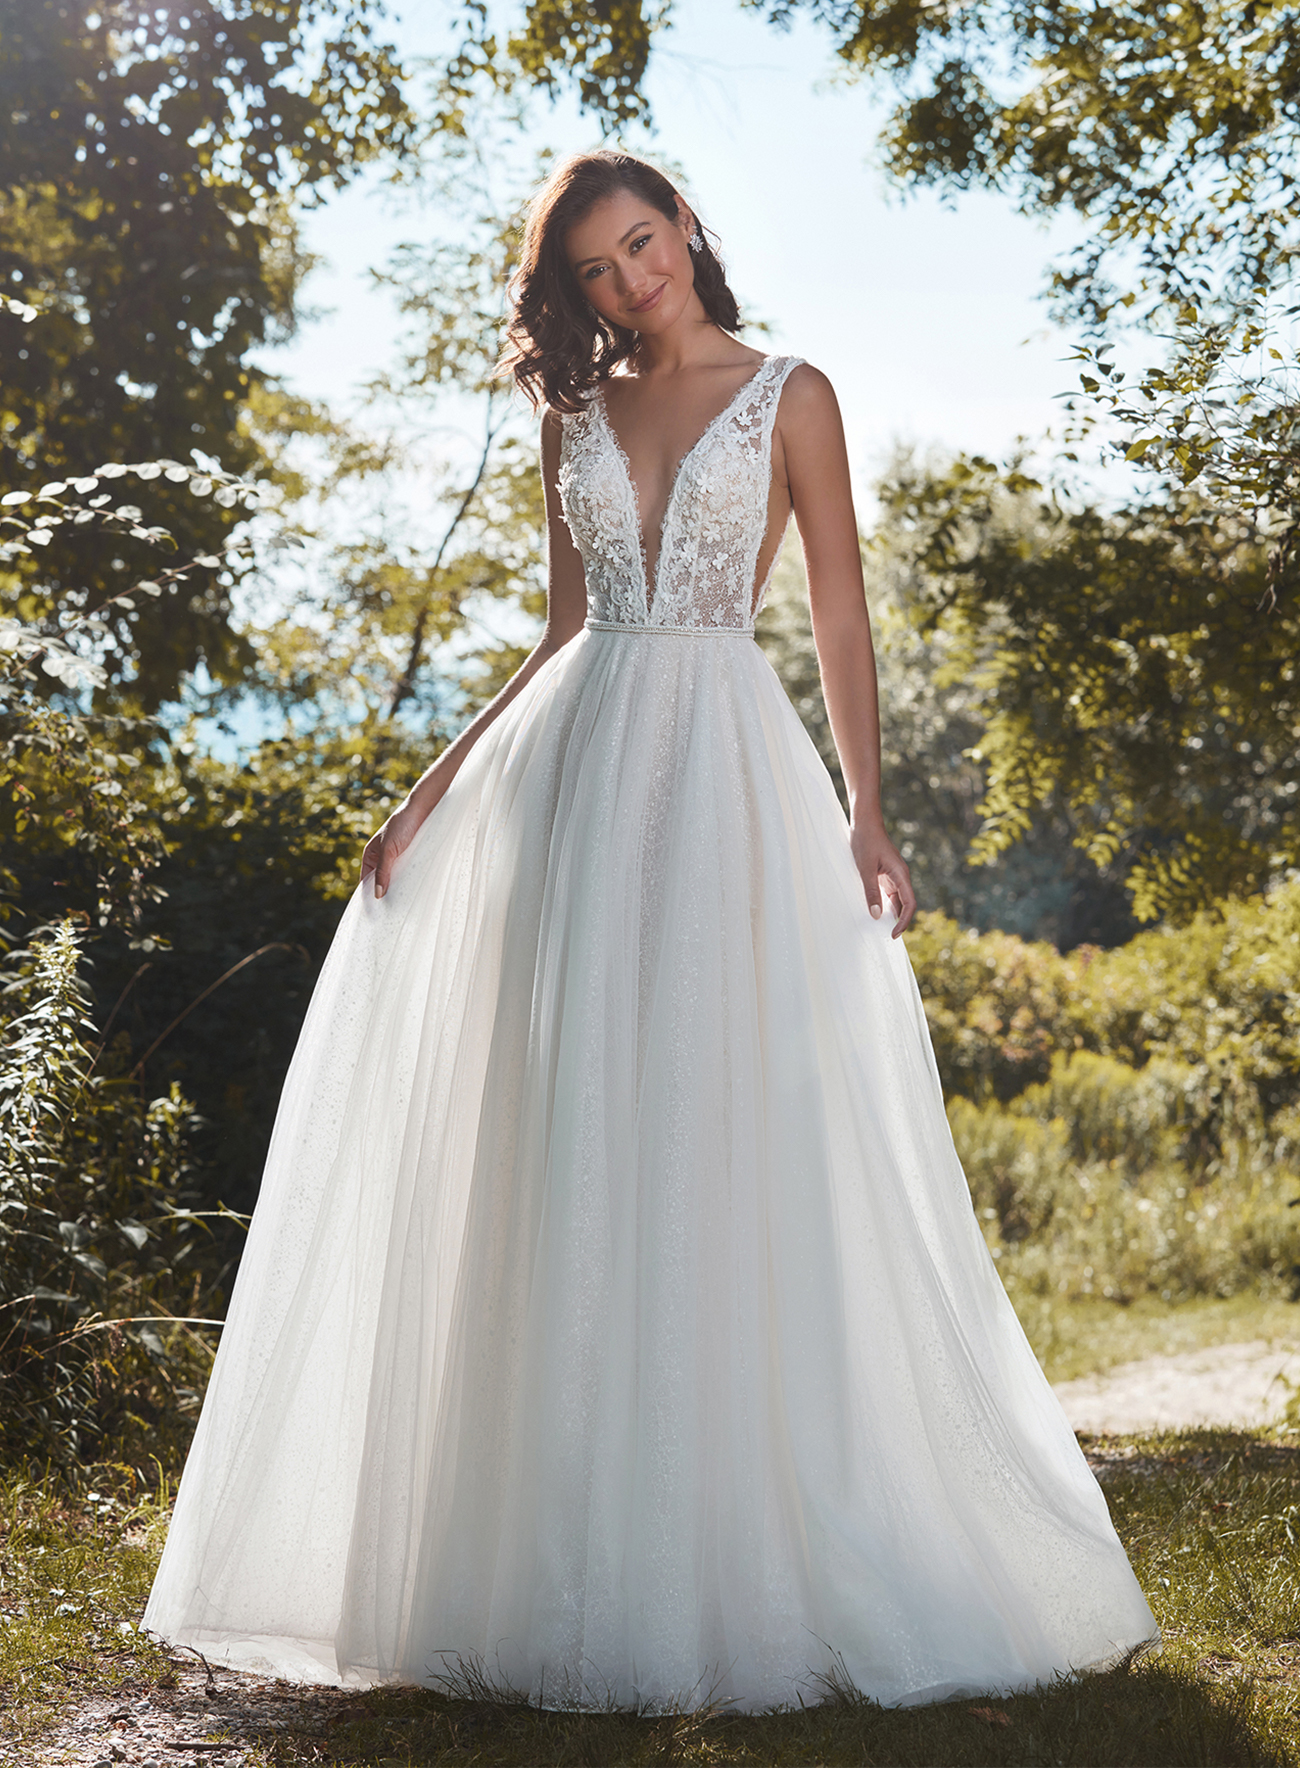 Polly from L'amour by Calla Blanche Bridal